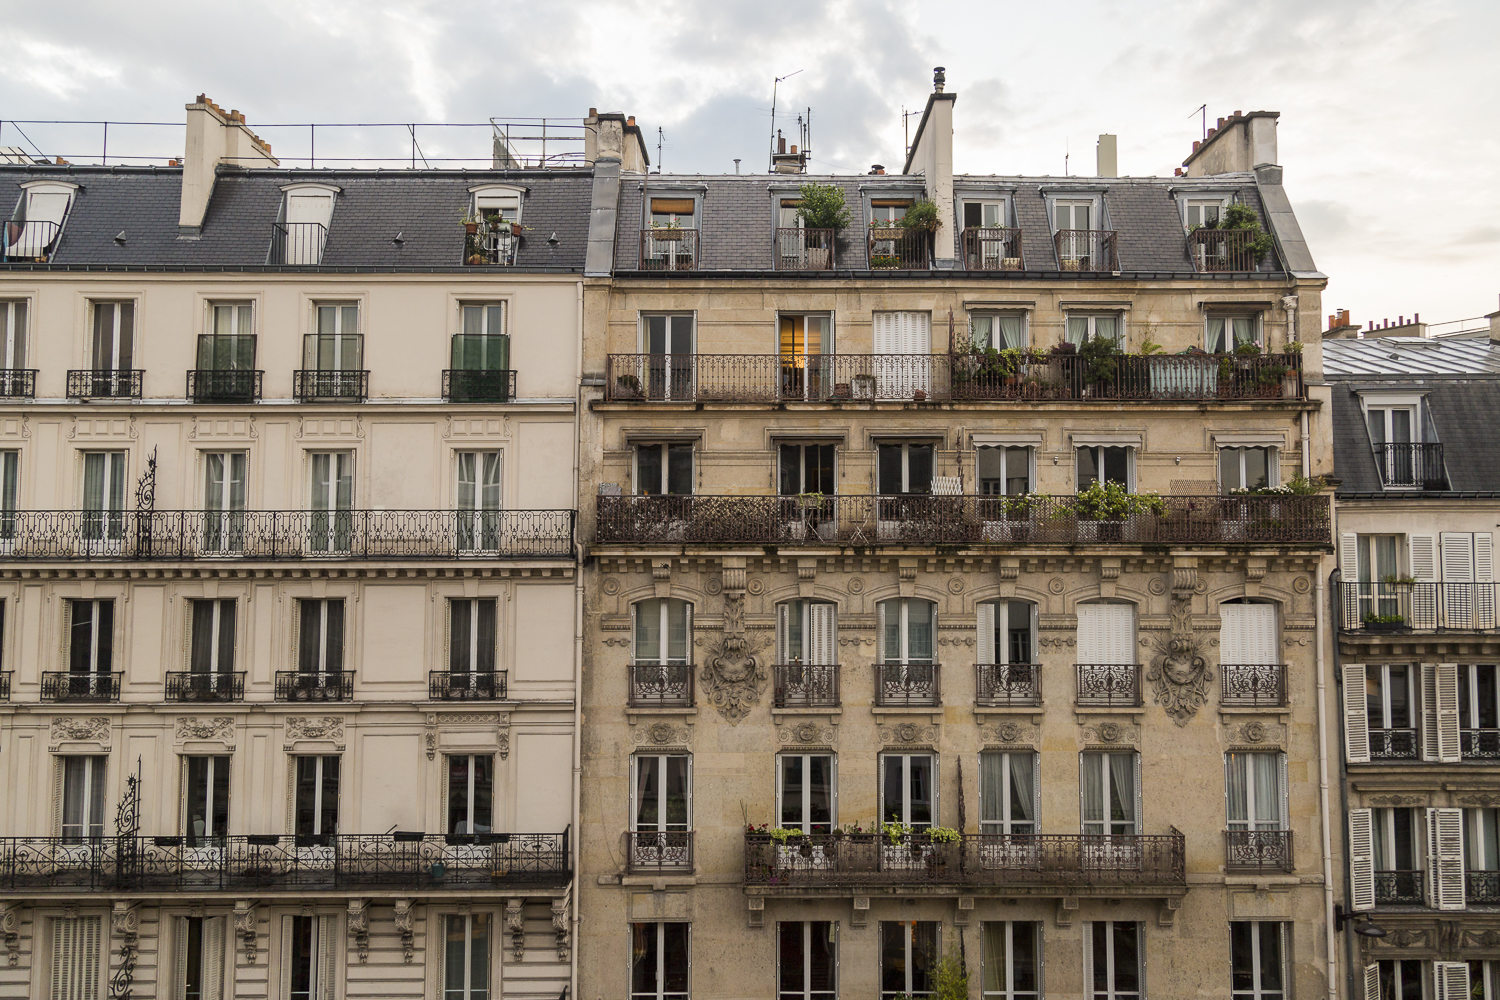 My room with a view. Parisienne architecture. Montparnasse.